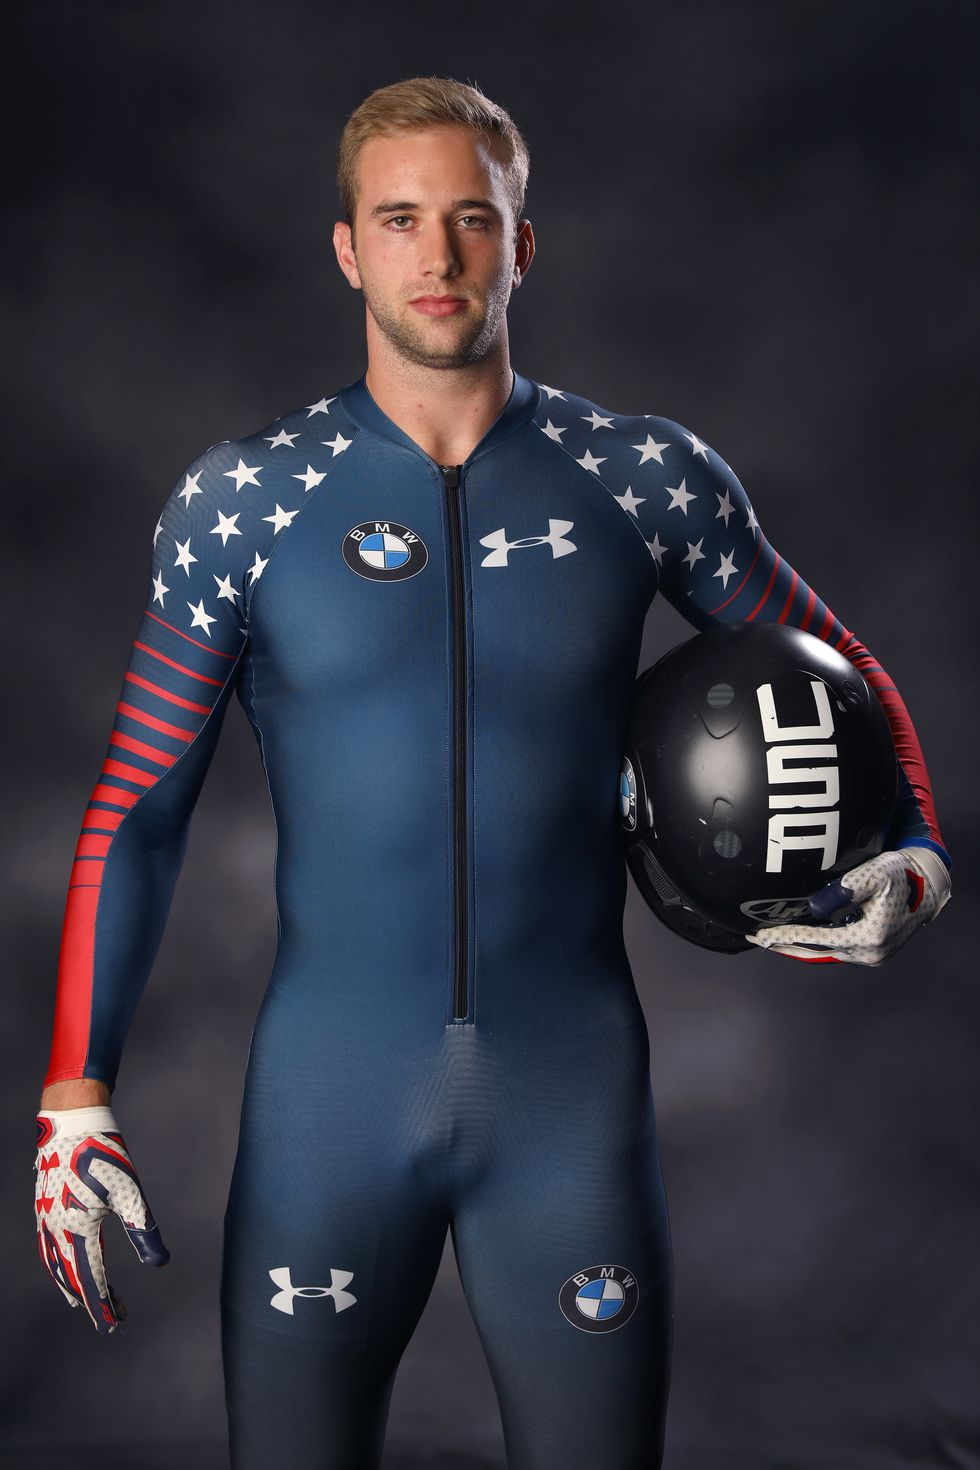 Evan Weinstock, USA The bobsledder poses for portraits ahead of the 2018 Games.